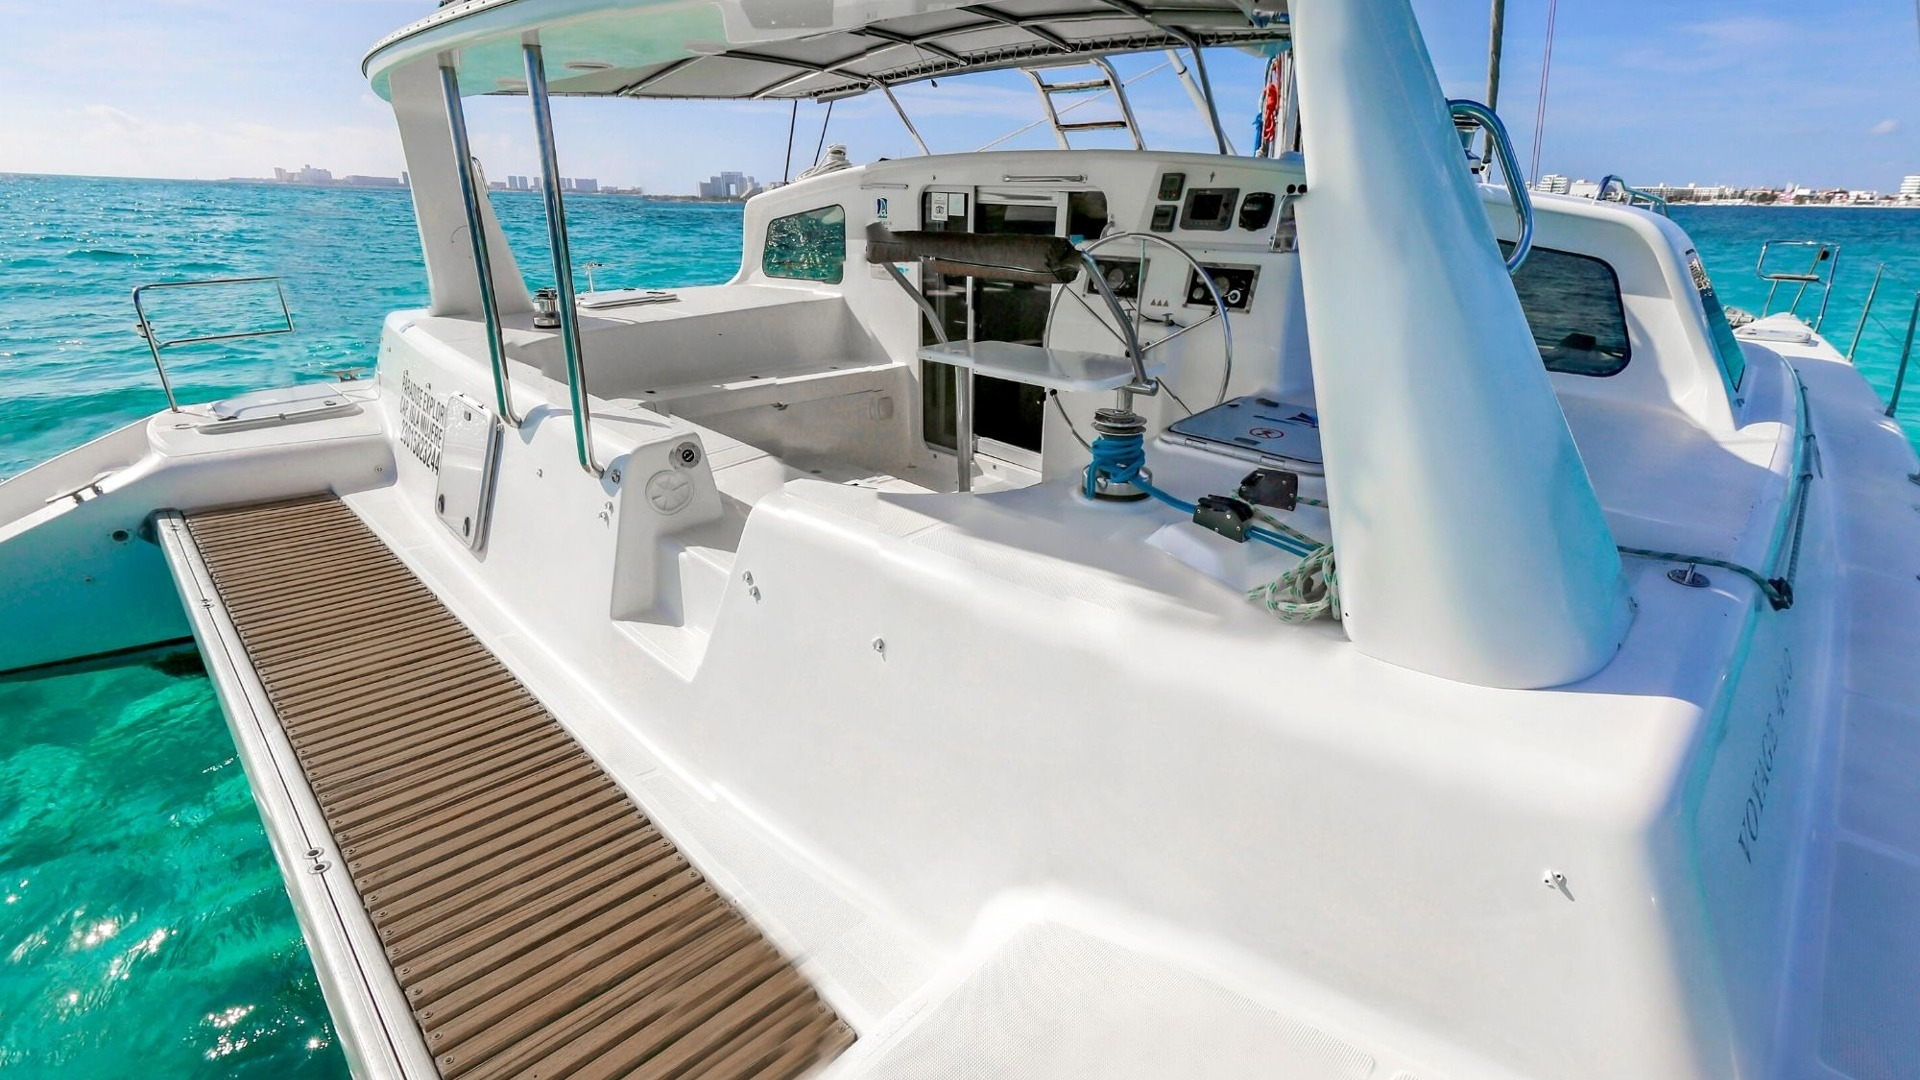 Paradise explorer - Private Isla Mujeres catamaran tour - Cancun Sailing